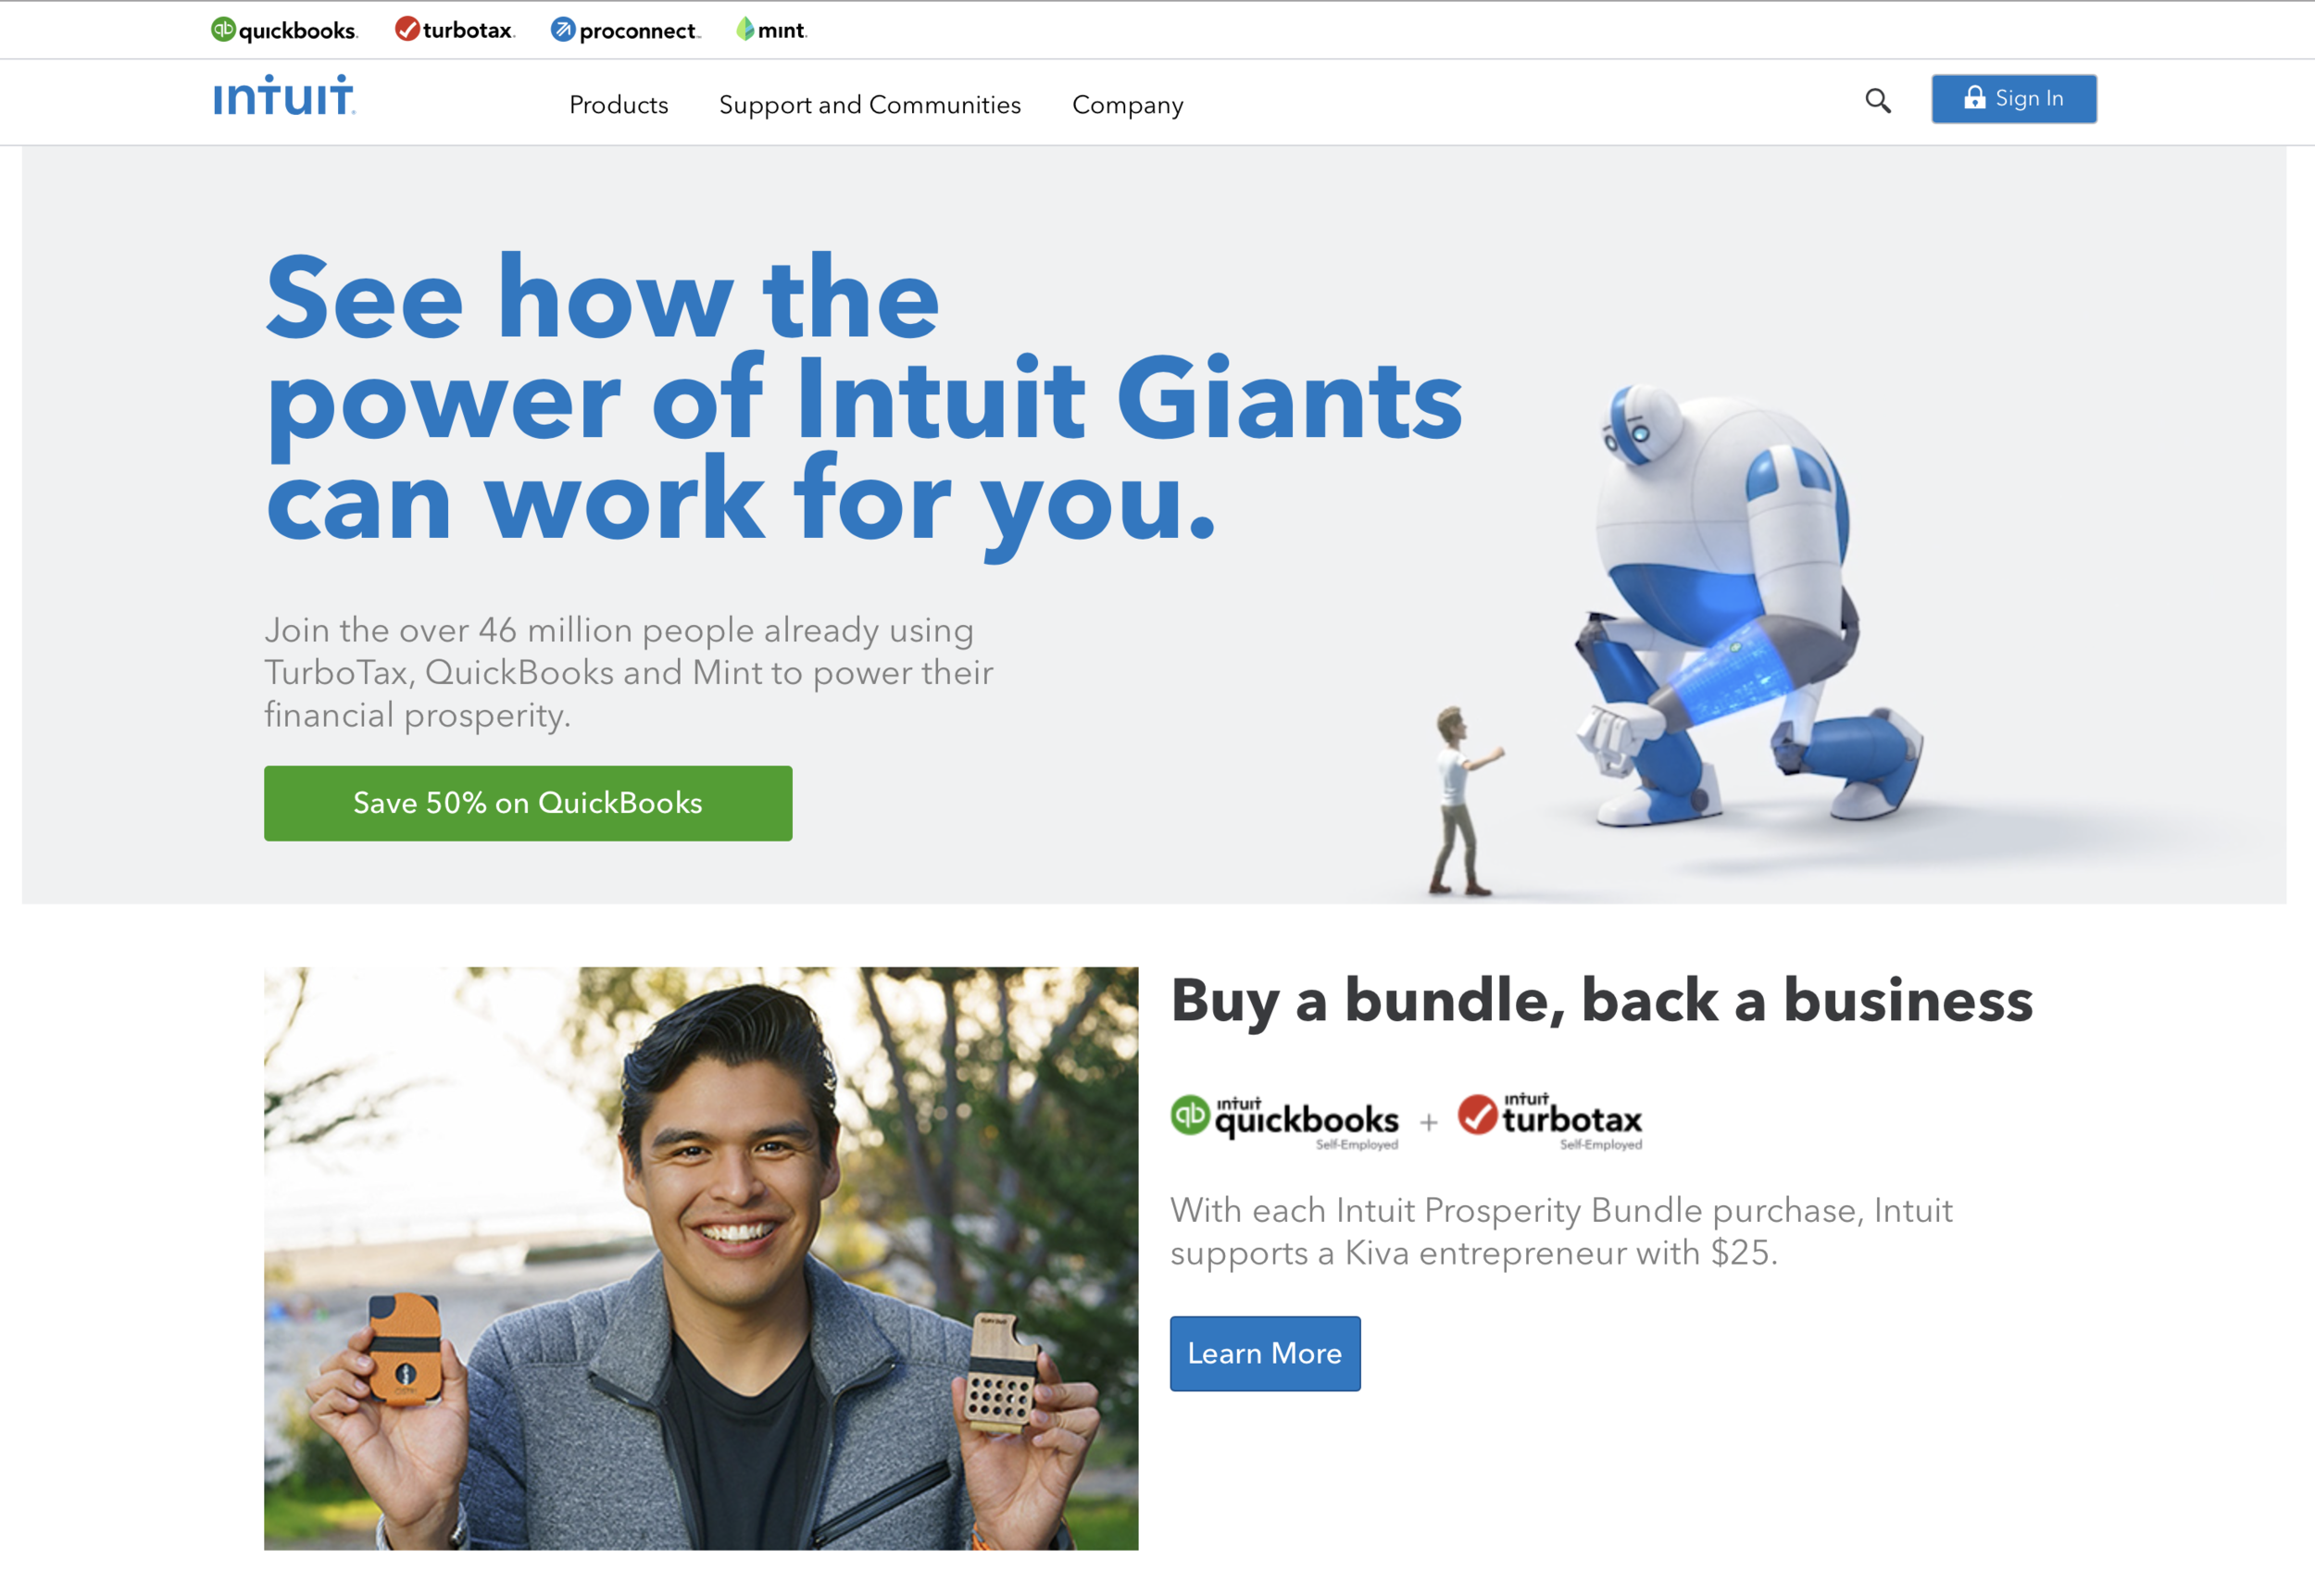 Website assets: INTUIT Homepage  As part of the Giant Story campaign the INTUIT.com website was also updated with new content.